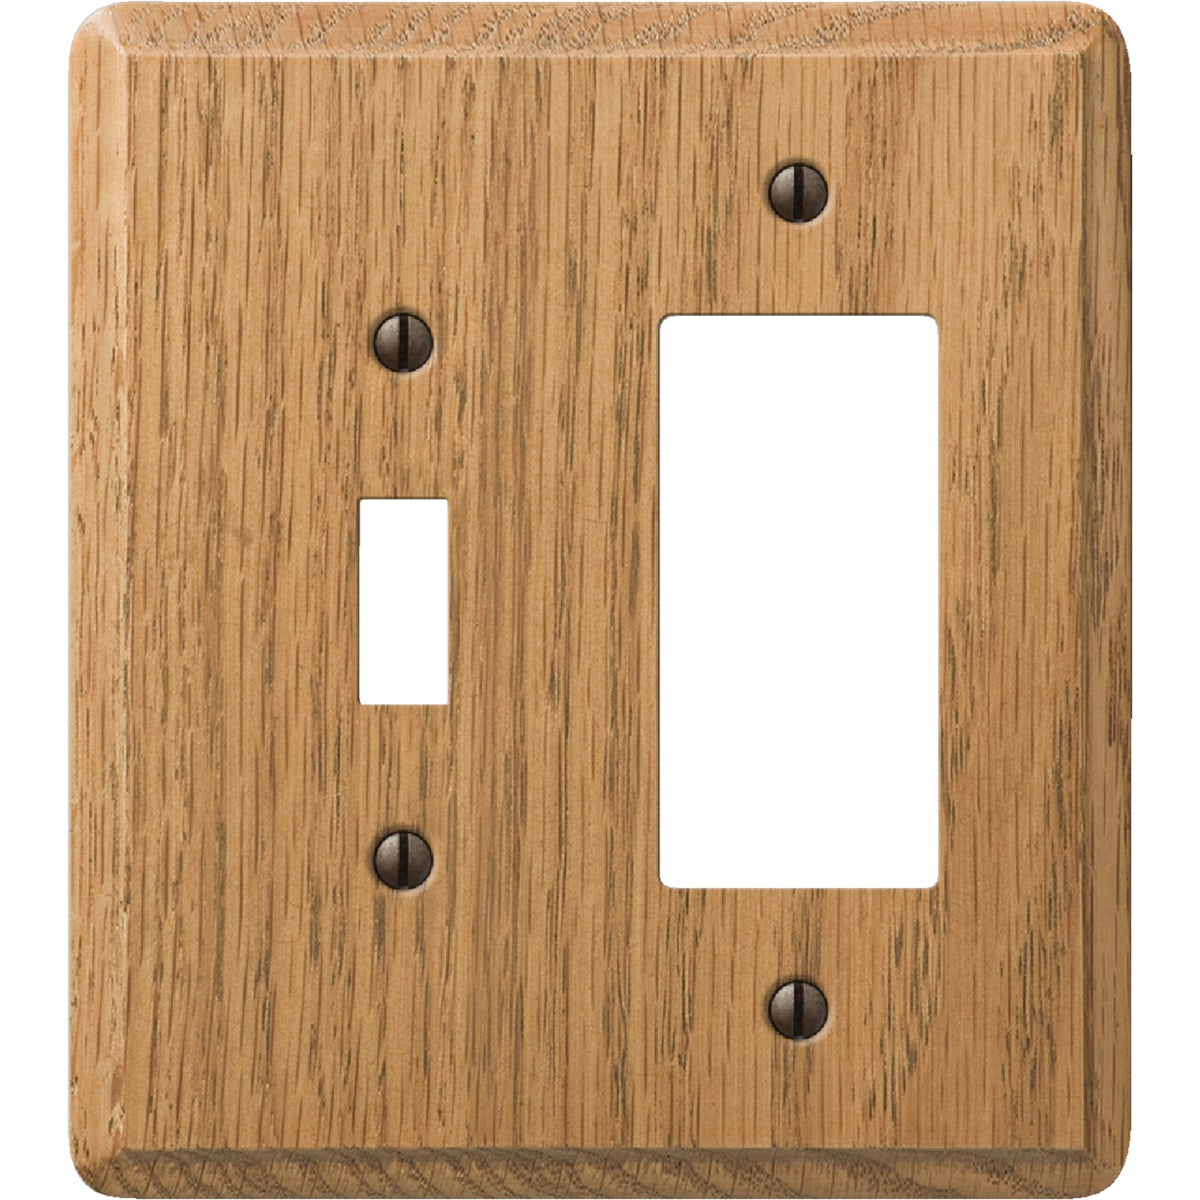 OAK COMBO WALL PLATE - 926L by Jackson Deerfield Mf